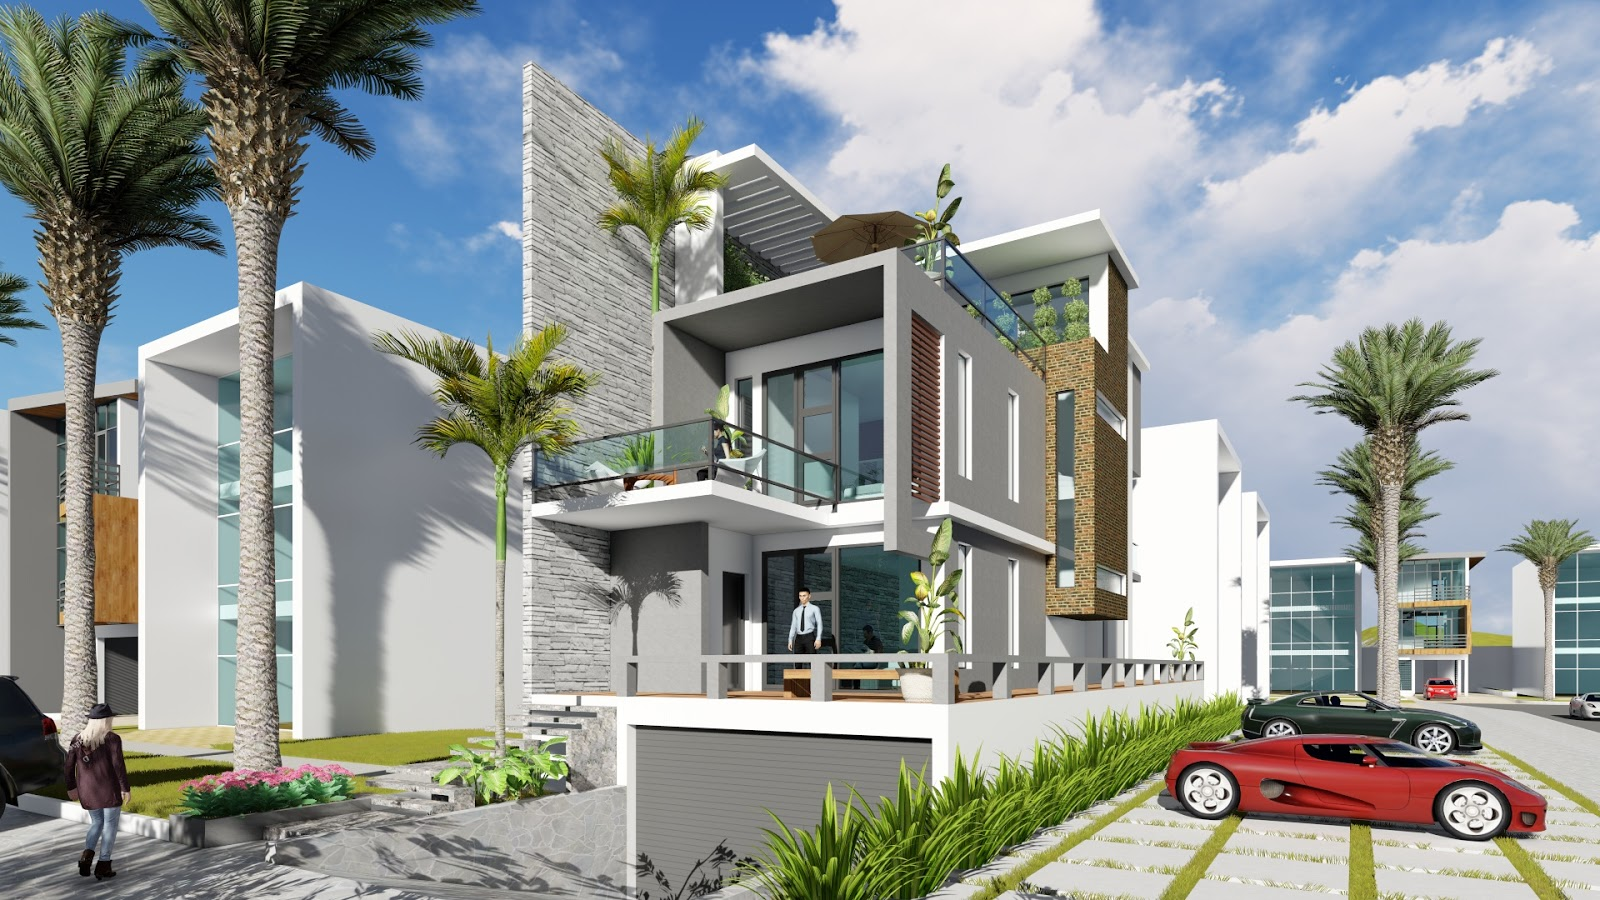 Sketchup Modeling 3 Stories Exterior House Design With Land Size